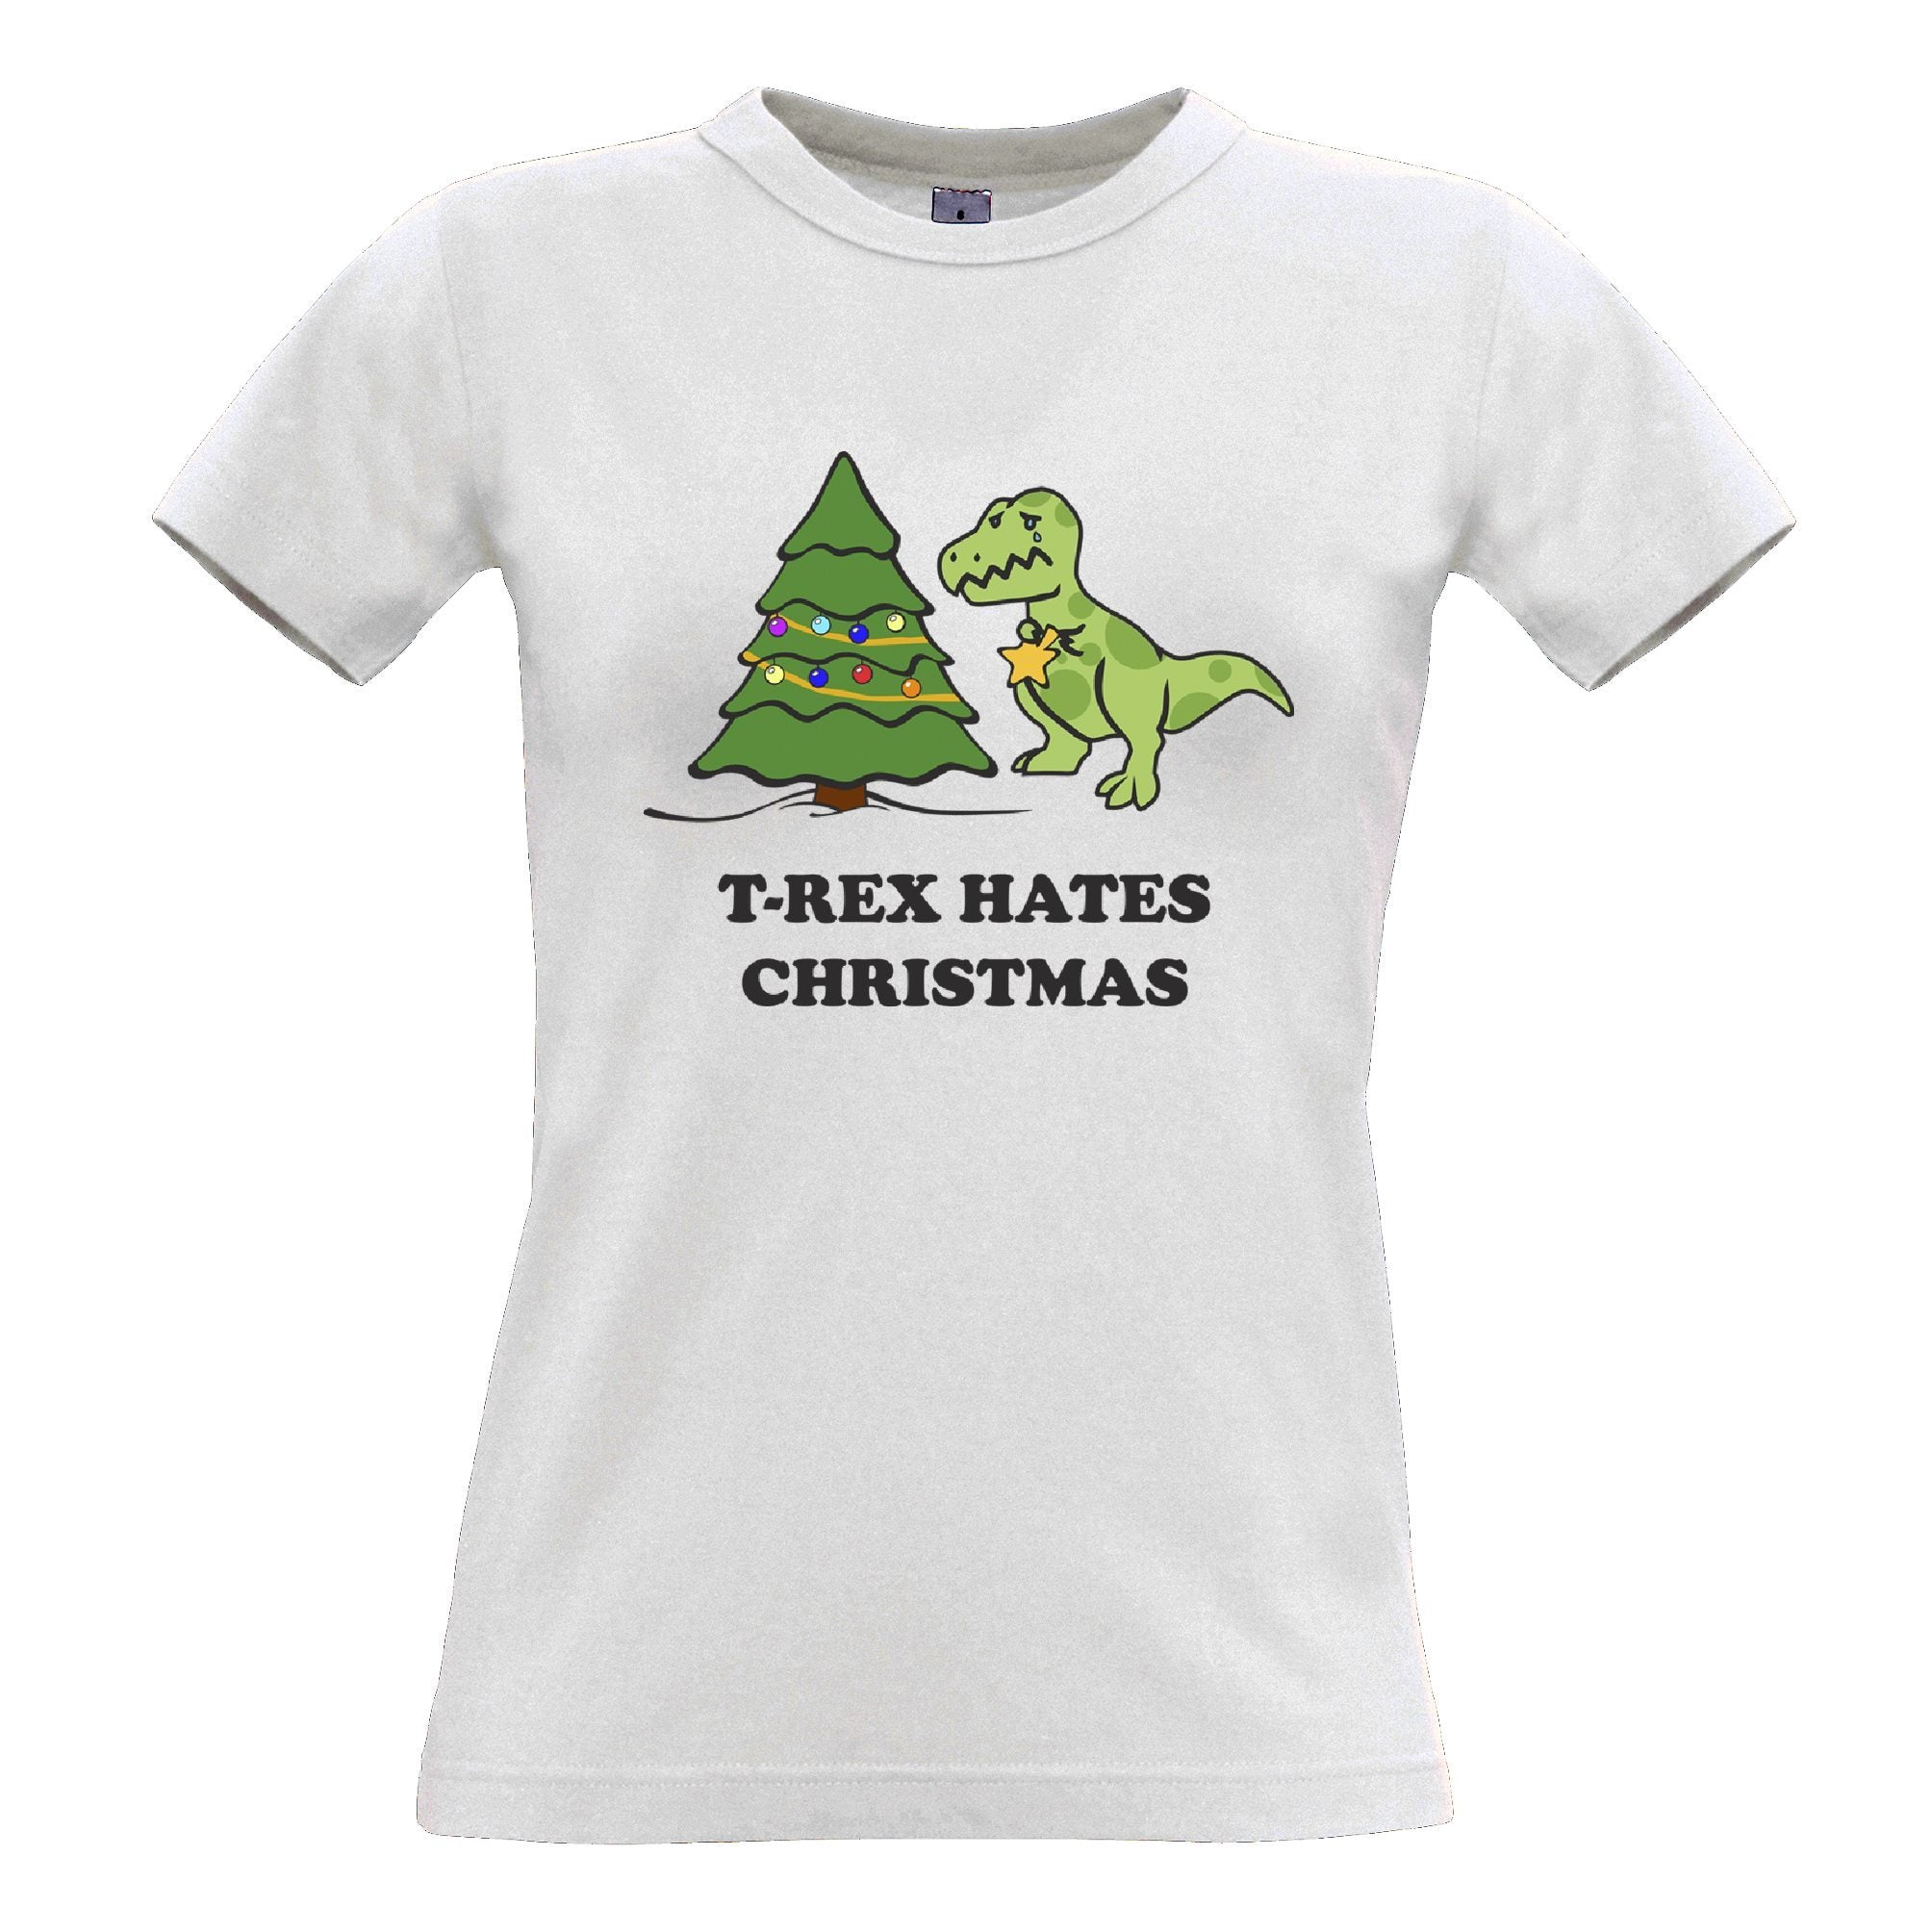 Novelty Xmas Womens T Shirt T-Rex Hates Christmas Joke